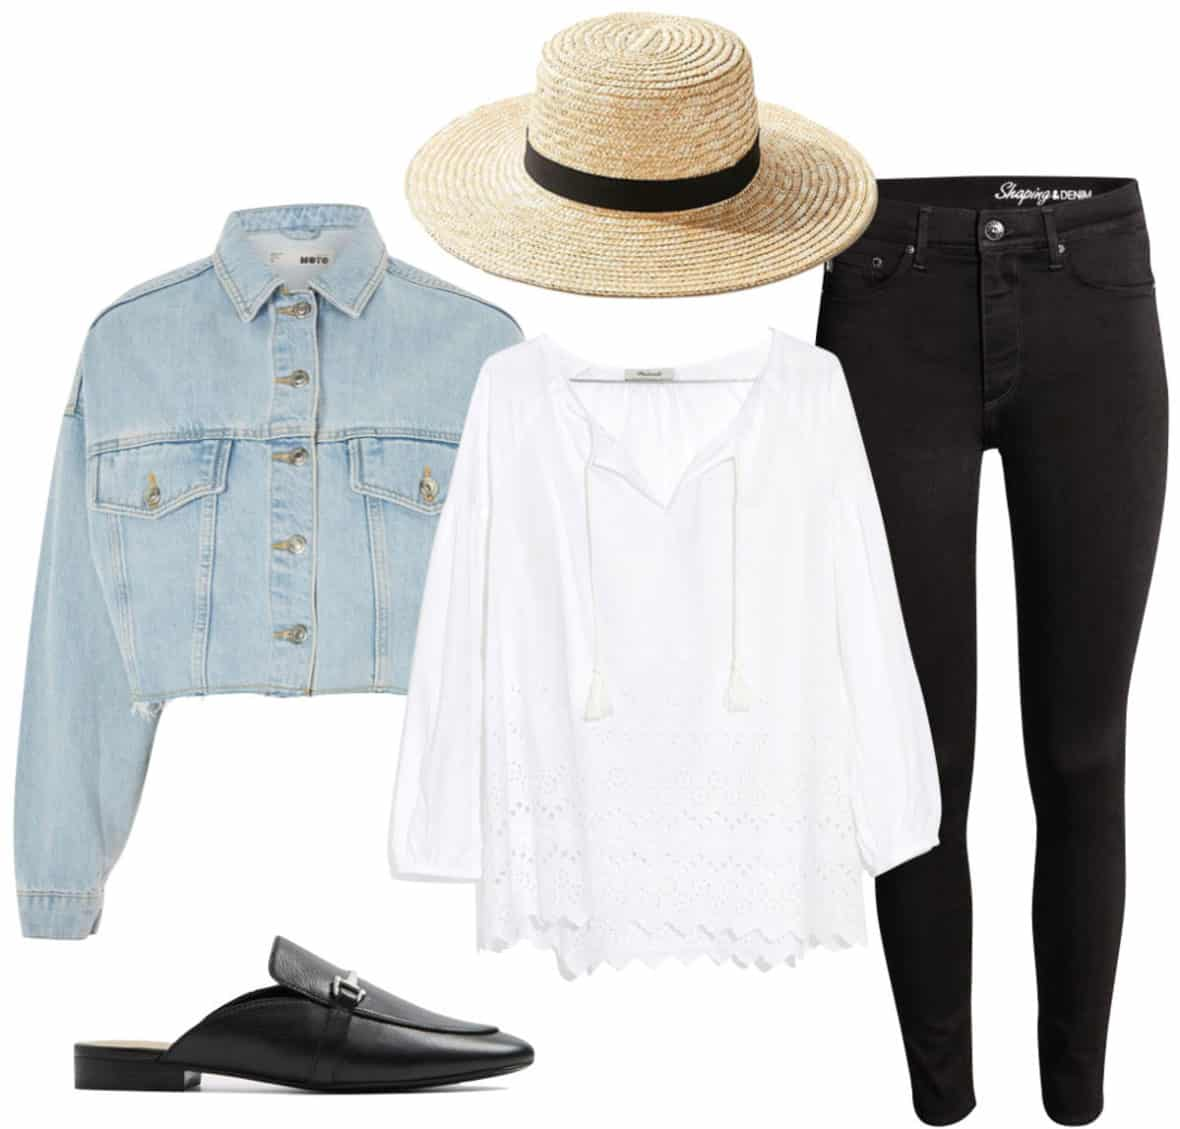 Hilary Duff Outfit: cropped denim jacket, straw boater hat, white eyelet blouse, black skinny jeans, and black loafer mules